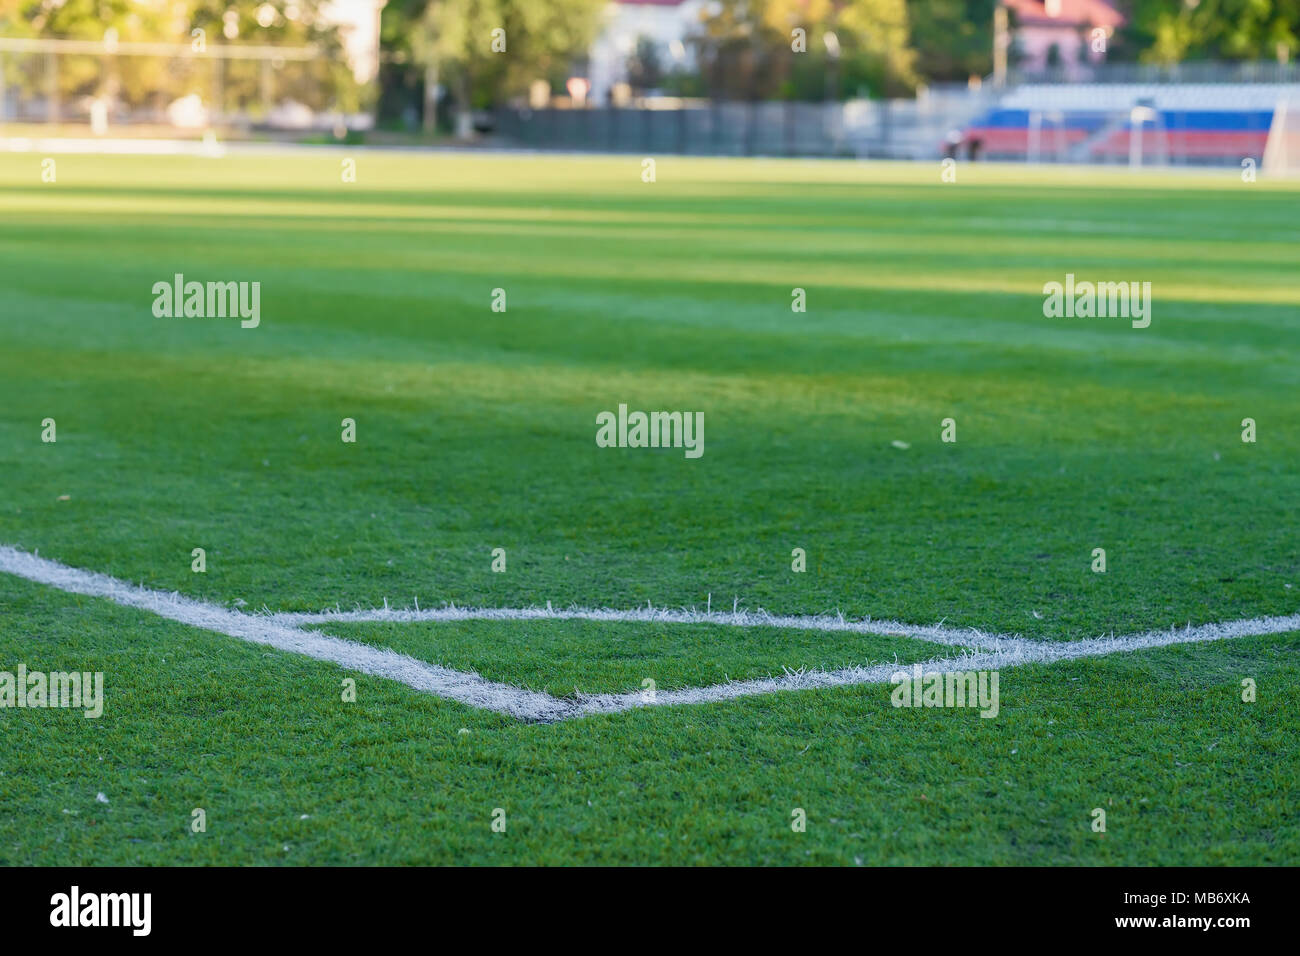 green grass football field grass texture seamless corner of soccer field pattern green grass for football sport stadium sport texture selective focus